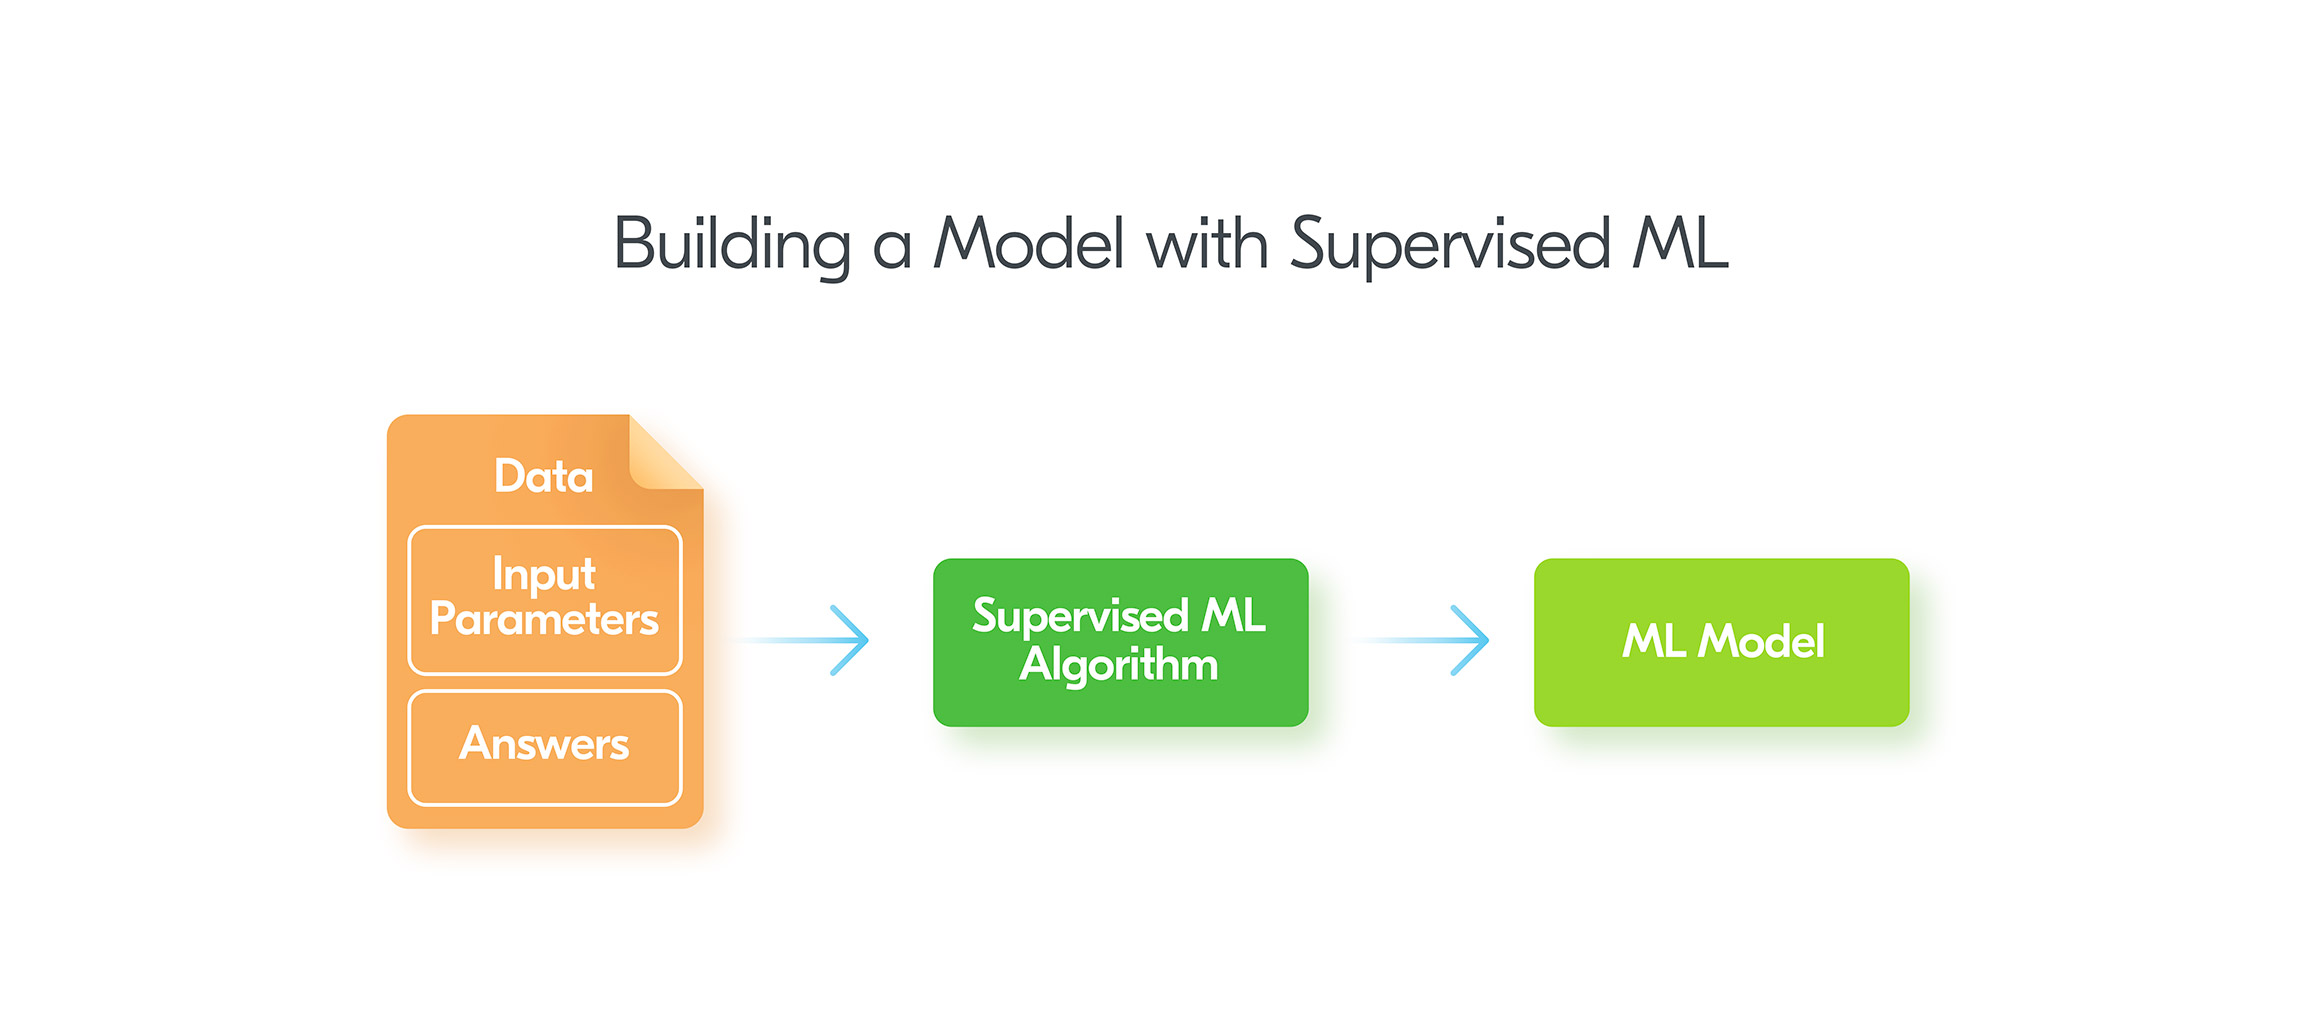 Building a model with Supervised Machine Learning